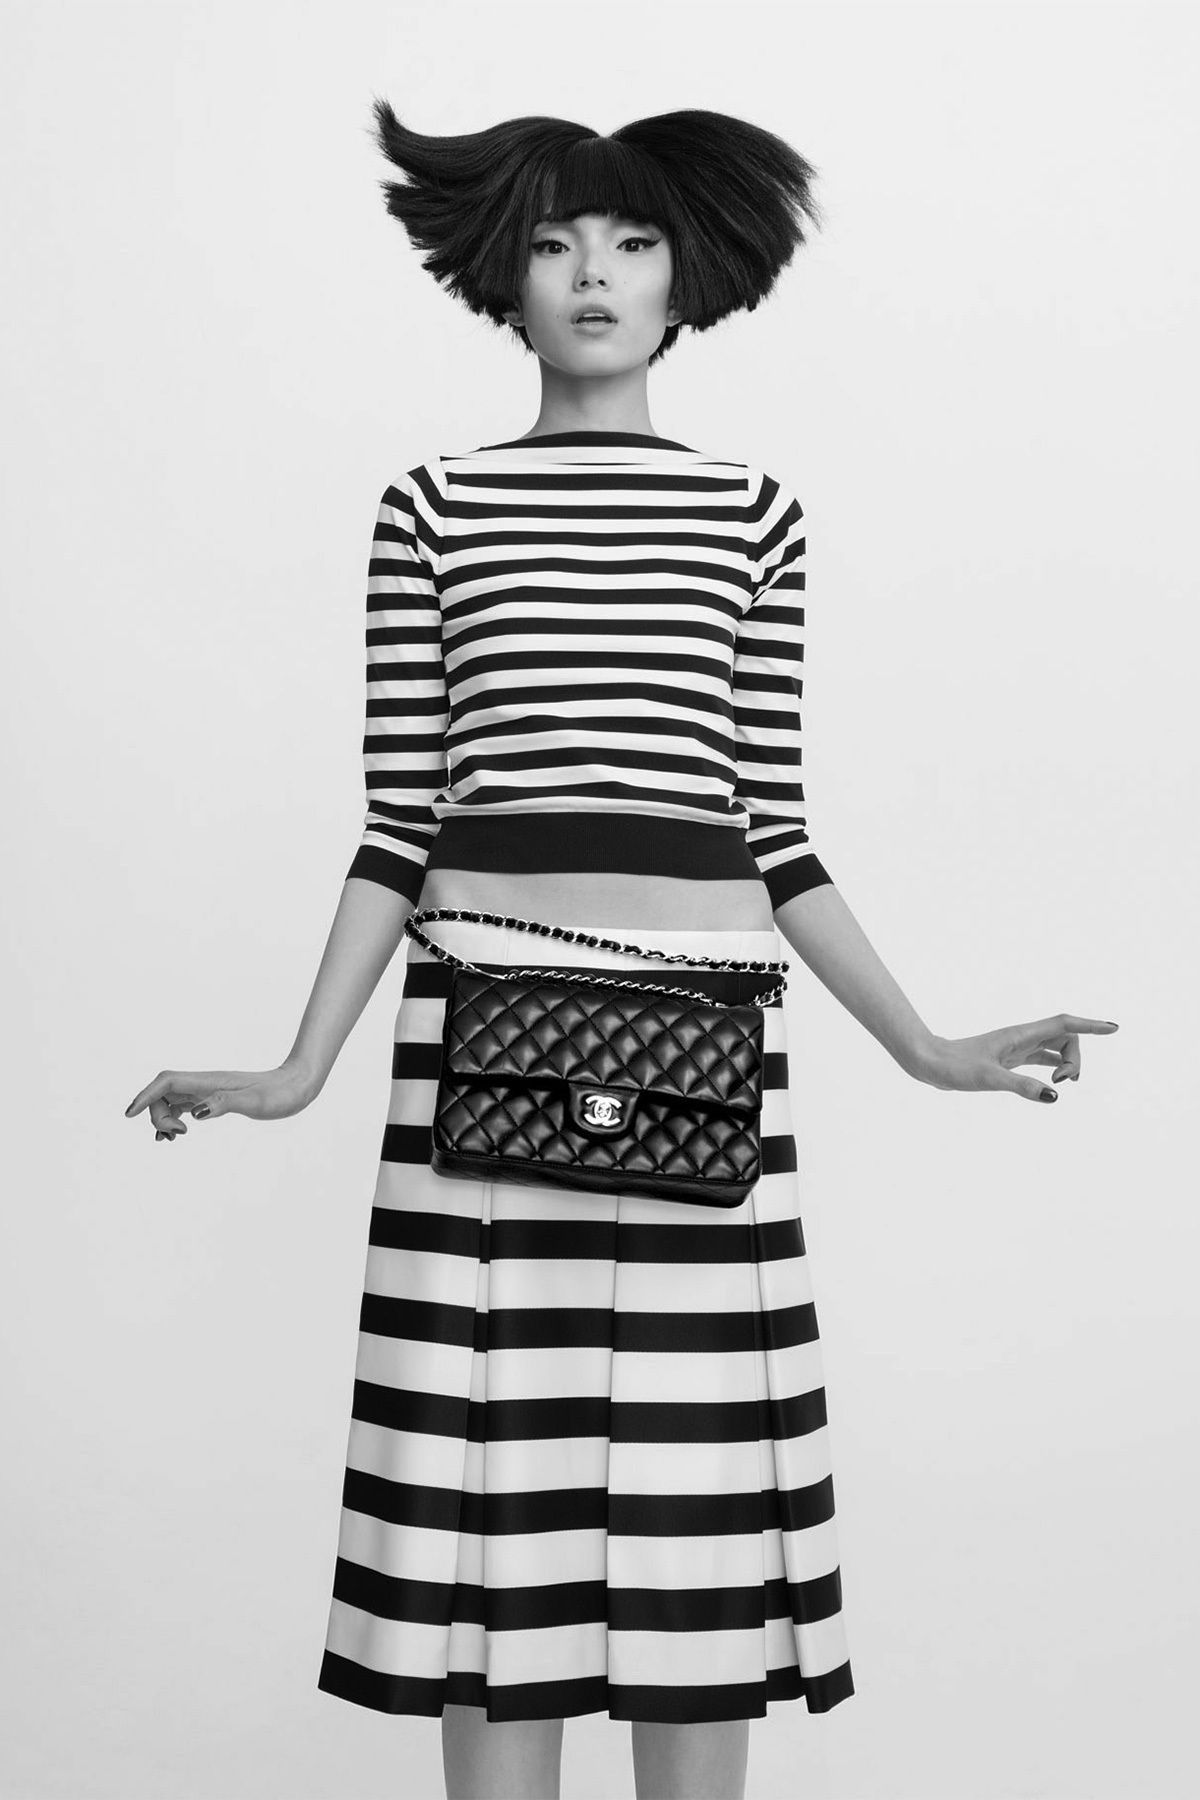 Carine Roitfeld Gives the Chanel 2.55 Bag Multiple Personalities - iconic